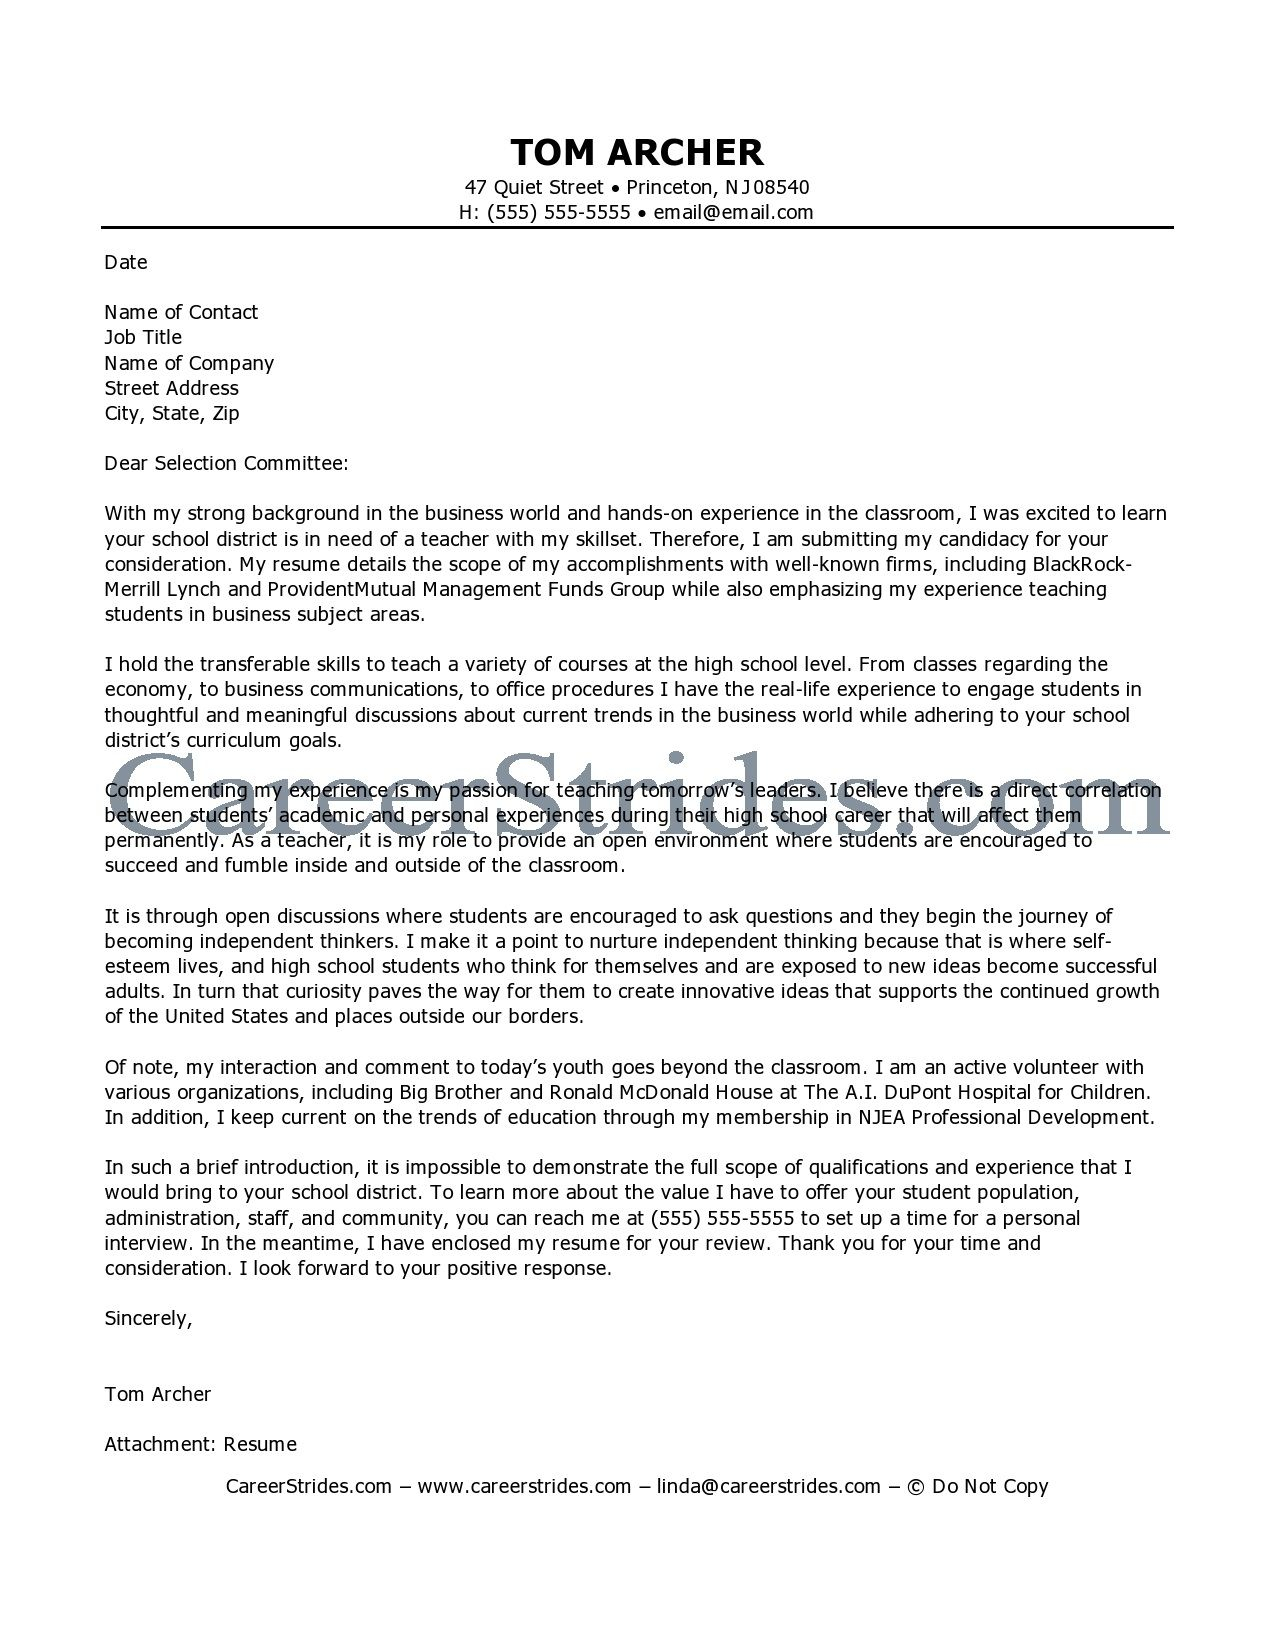 Princeton Resume Template - Teaching Cover Letters Careerstridesbusiness Teacher